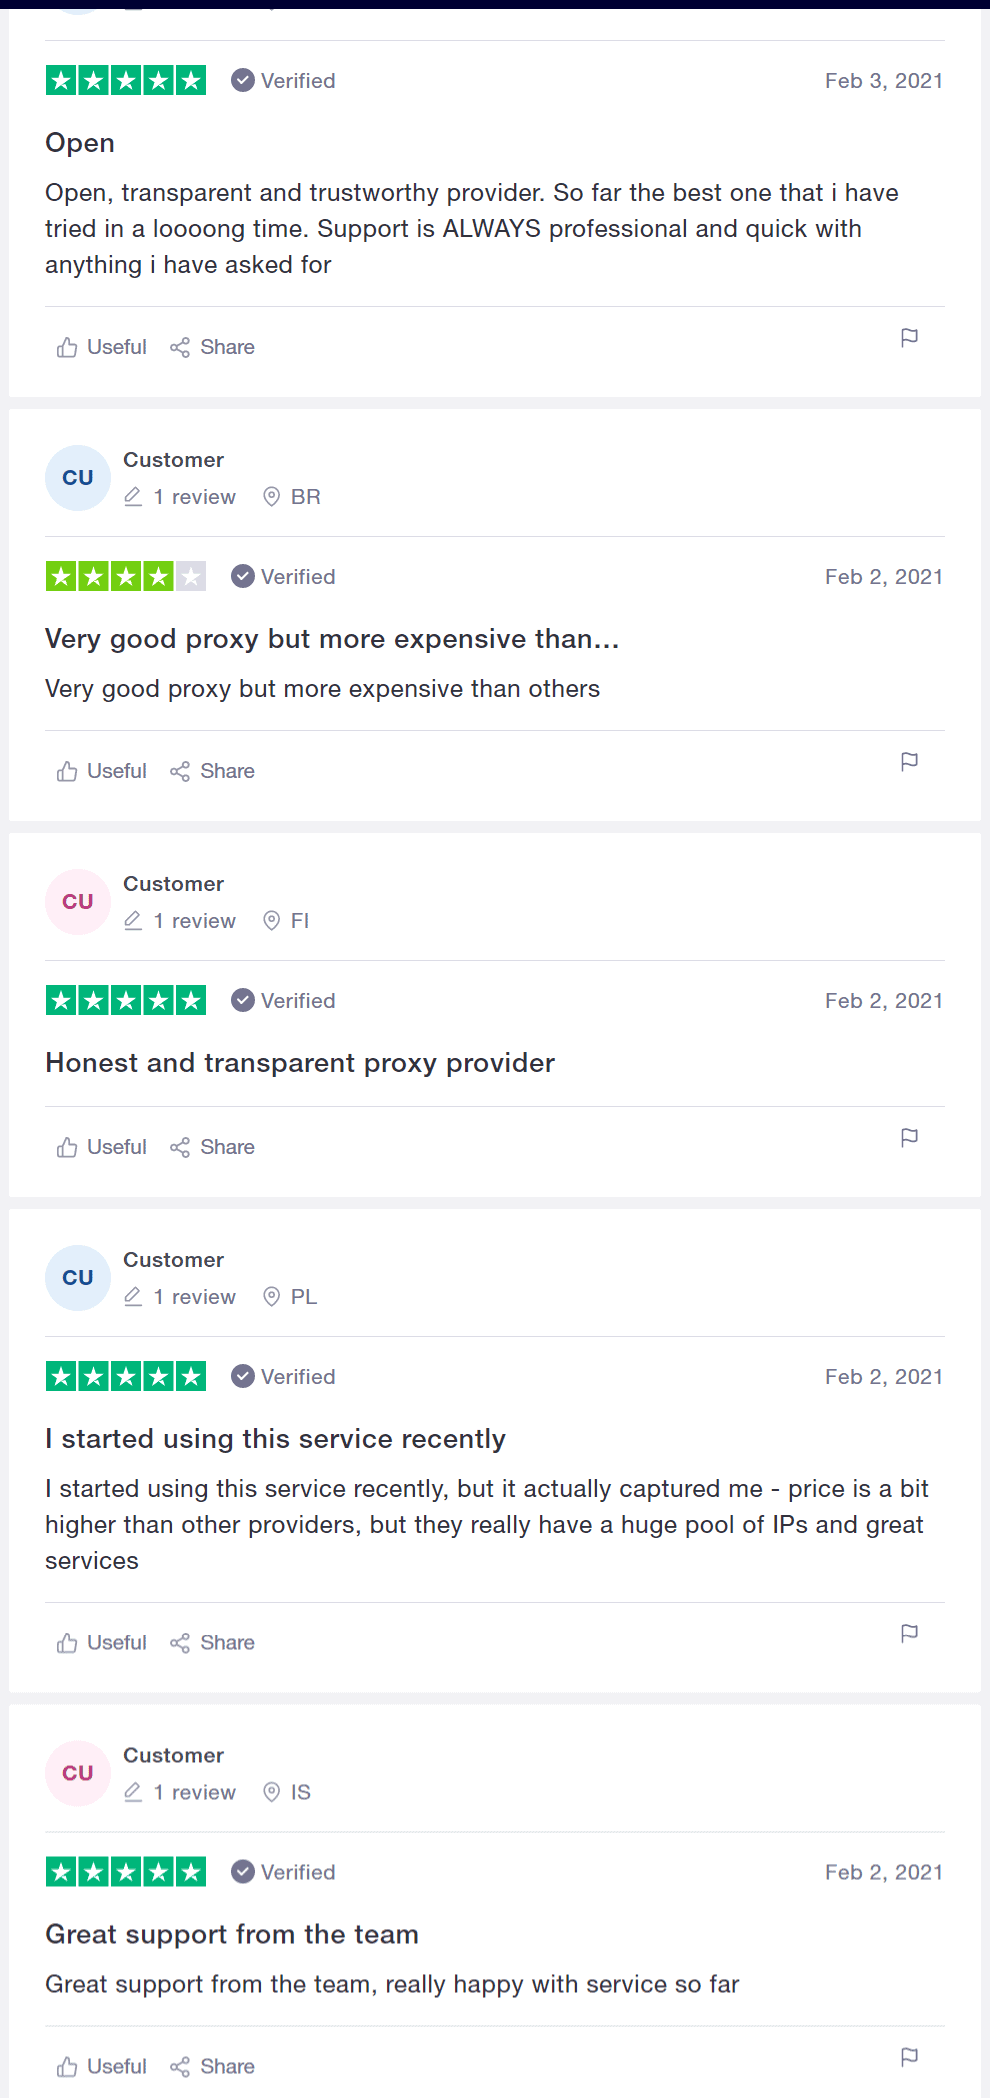 Oxylabs-Reviews-Read-Customer-Service-Reviews-of-oxylabs-io